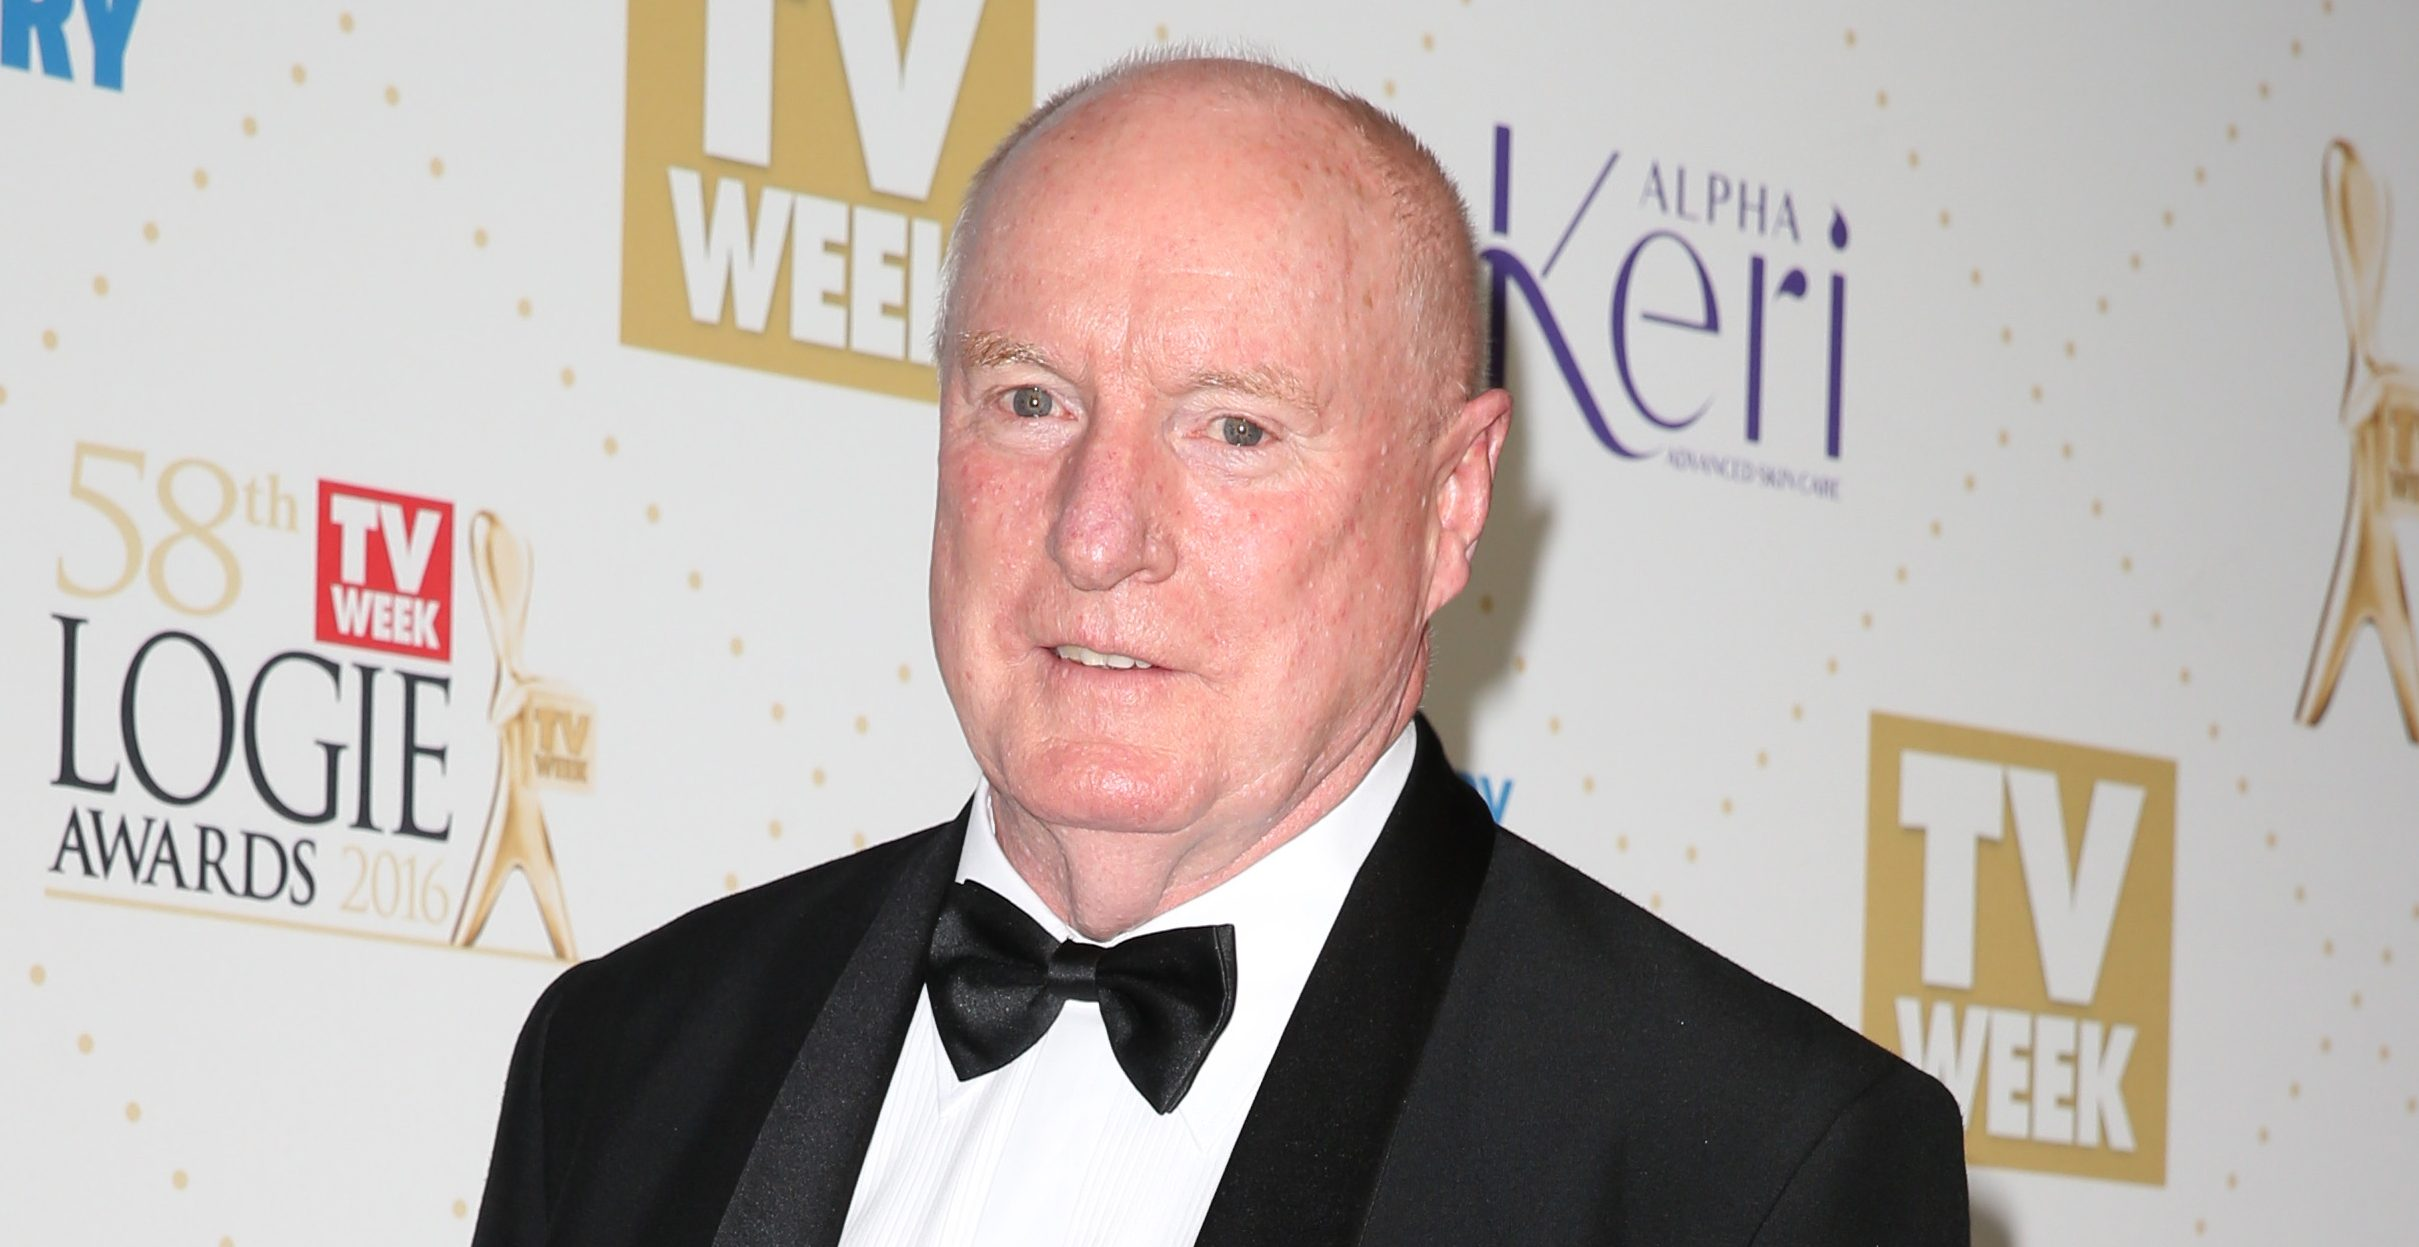 Home and Away's Ray Meagher rushed to hospital for 'emergency heart surgery'